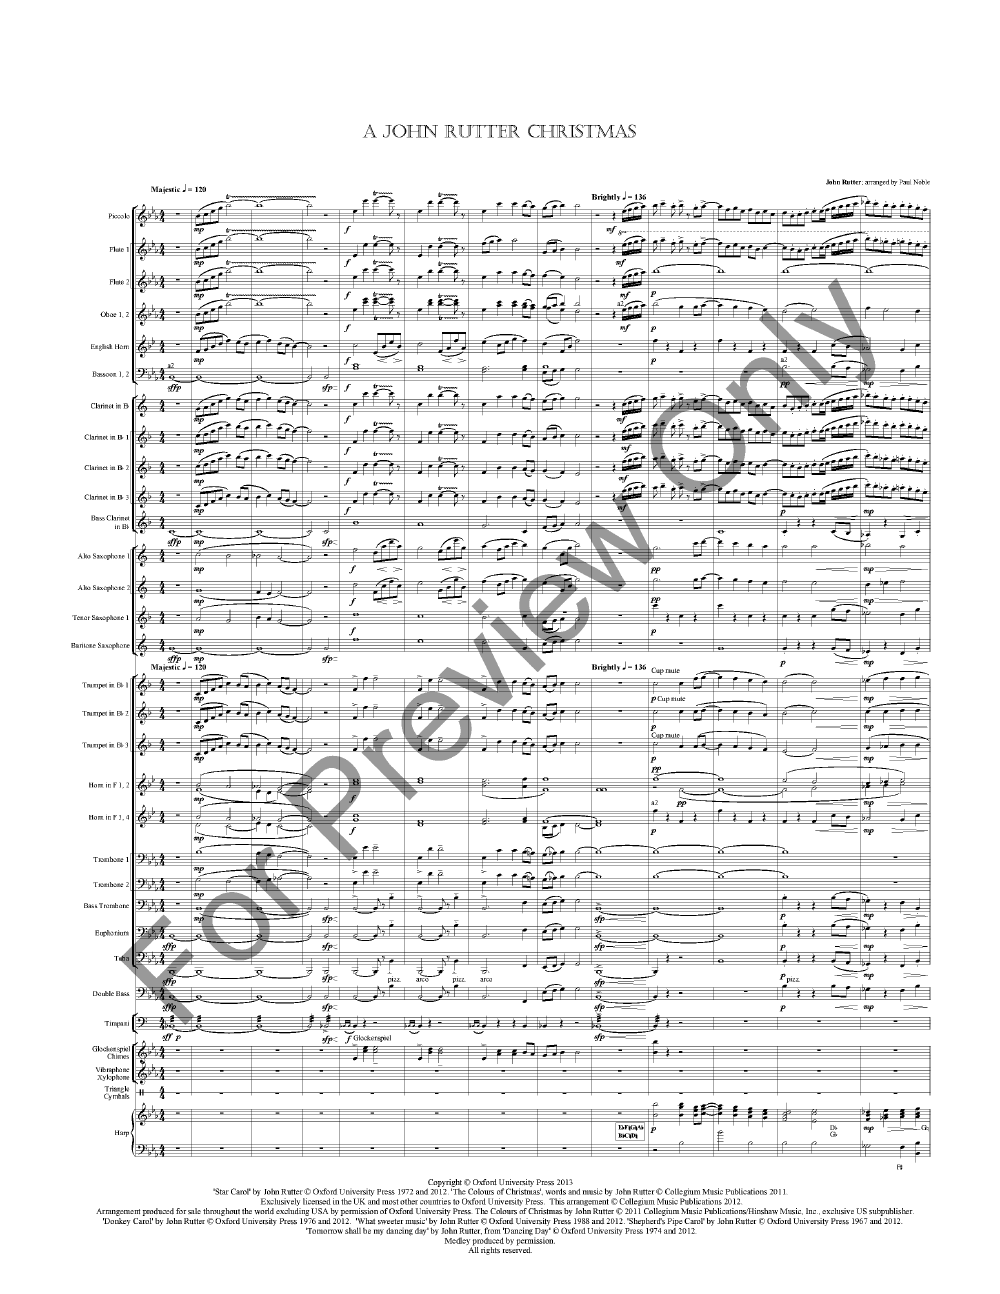 A John Rutter Christmas by John Rutter/arr. Paul | J.W. Pepper Sheet ...